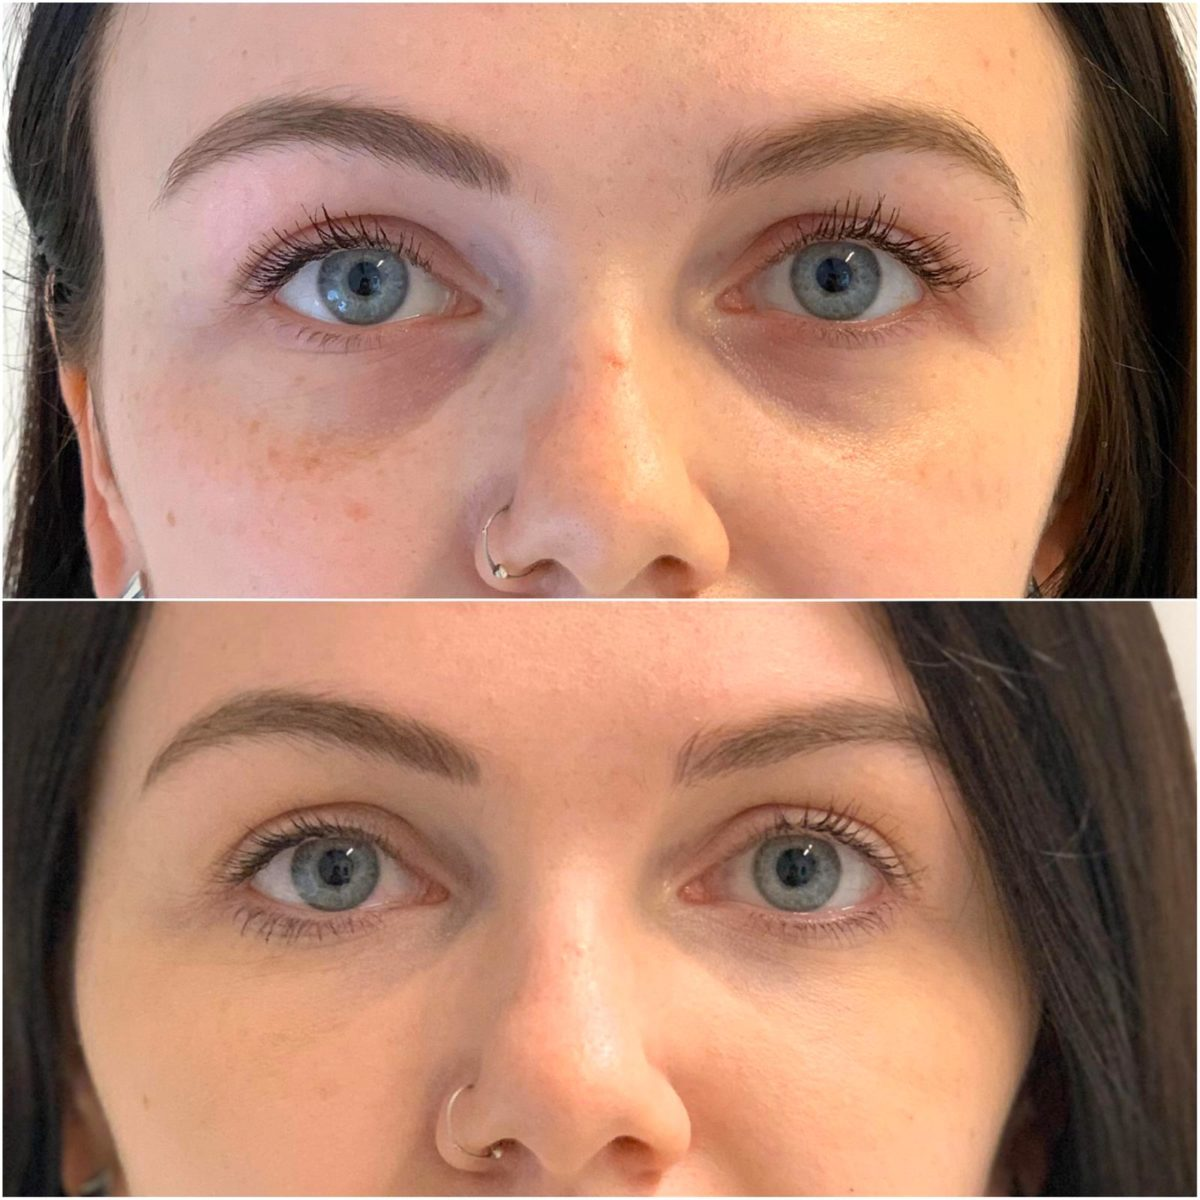 TOTW Ep 8: Tear trough filler for under-eye hollows